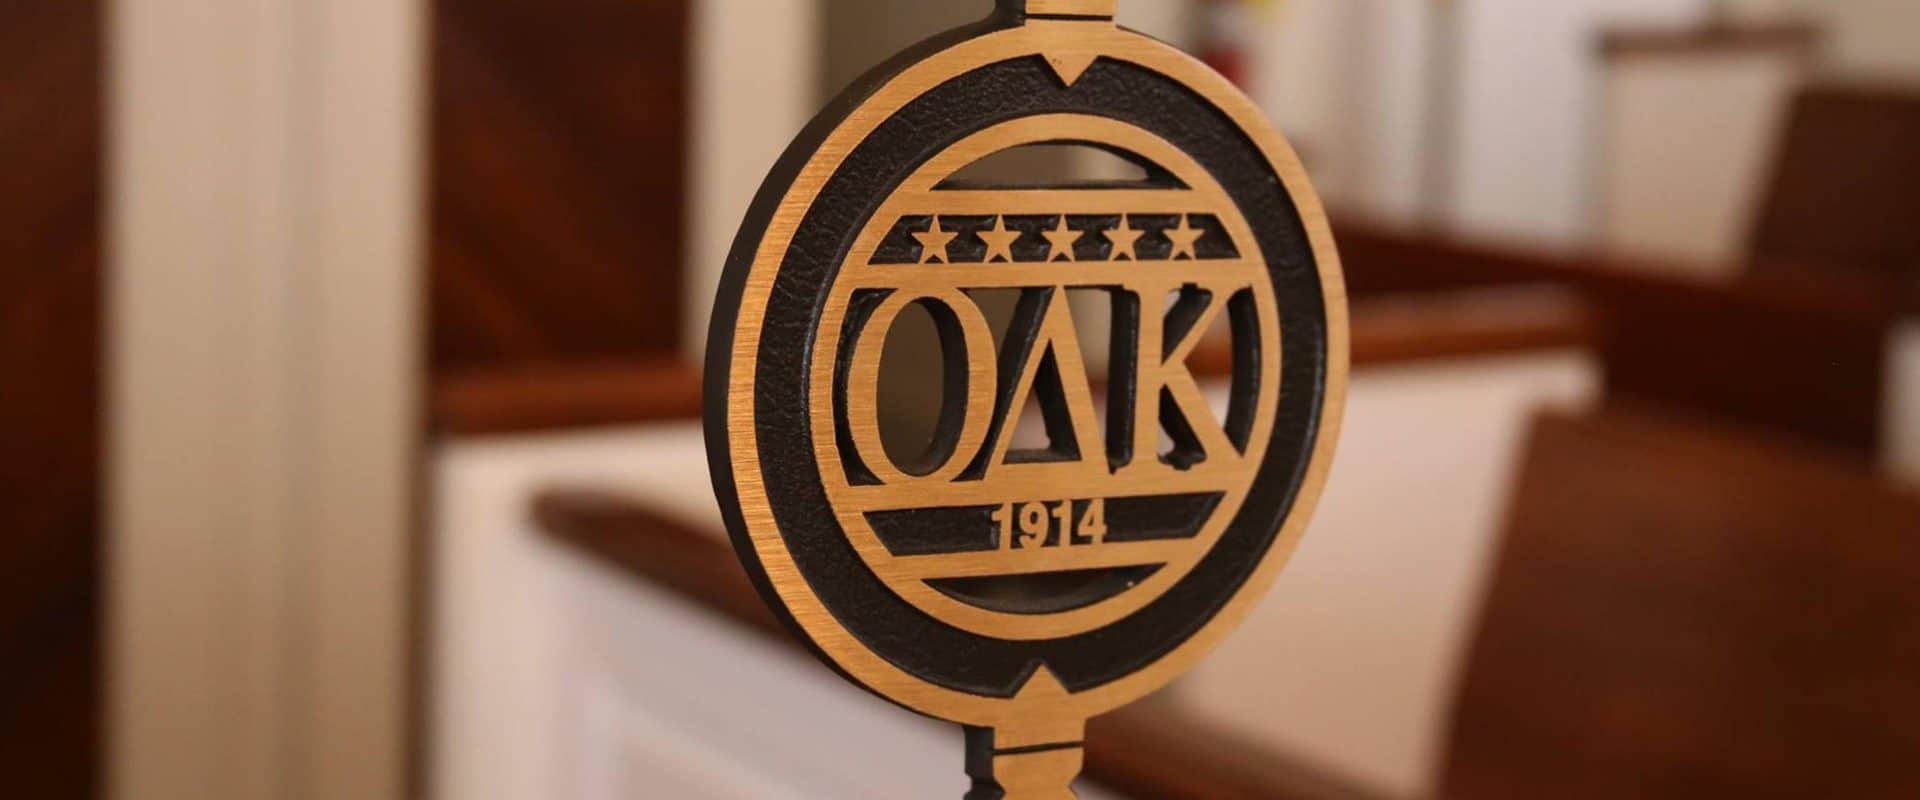 The WPU Circle of ΟΔΚ, which started in 2008, has inducted more than 250 members.